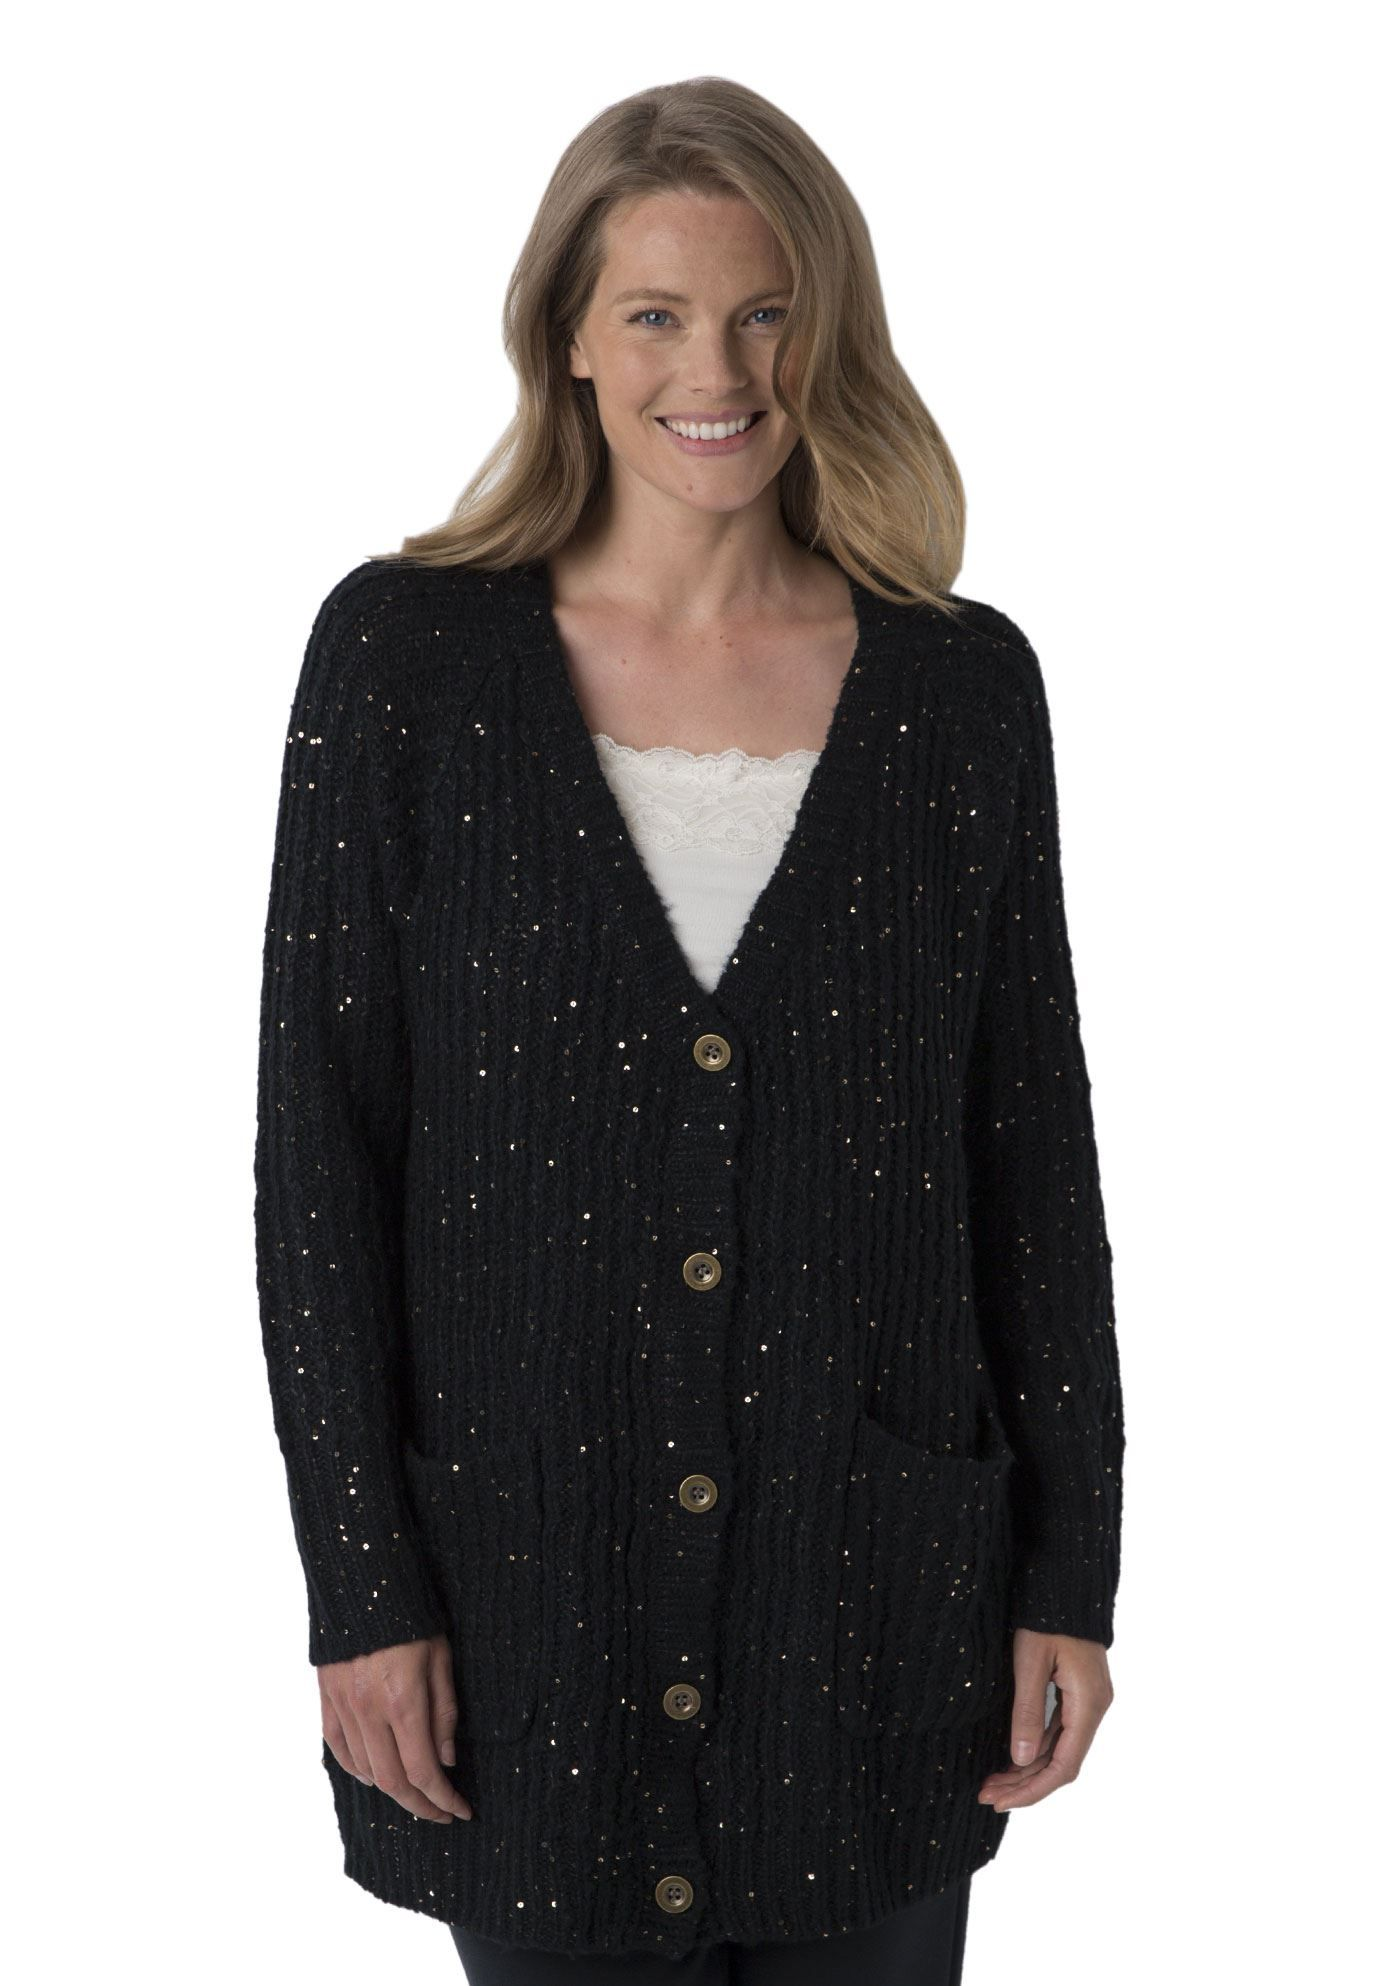 Elevate the occasion with the subtle sparkle of sequins in a cozy ...